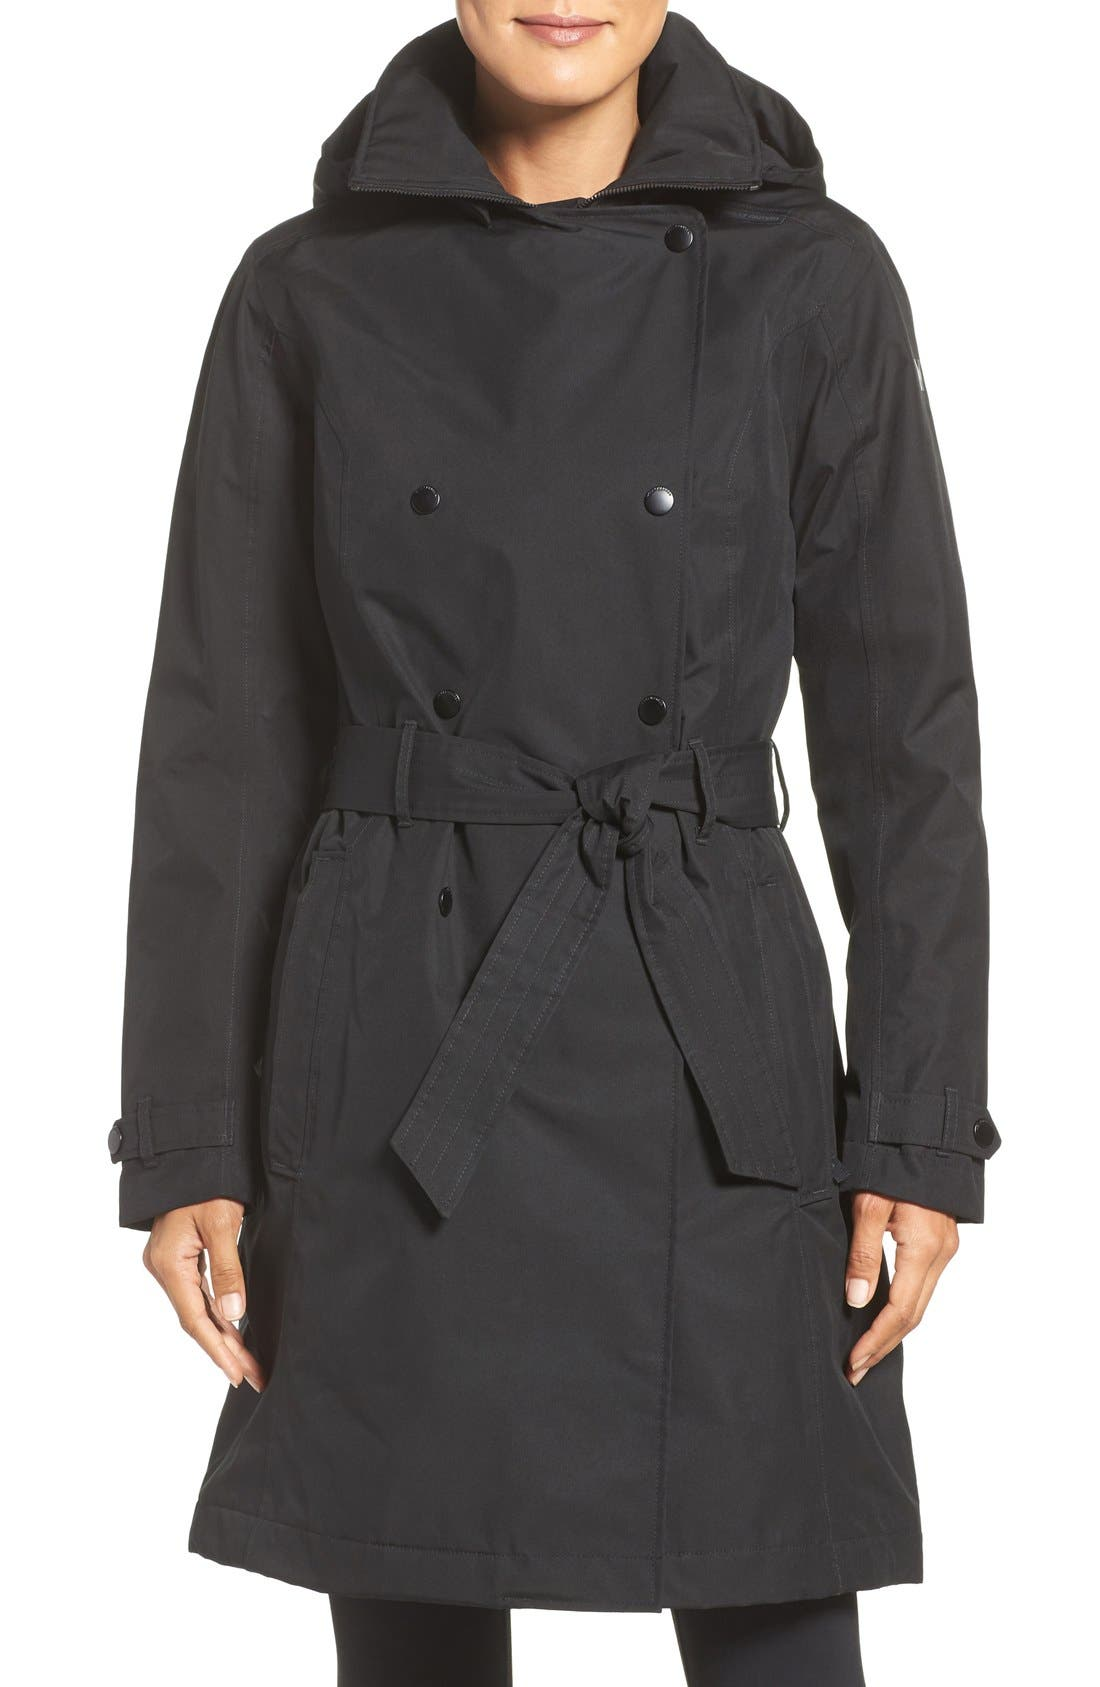 Alternate Image 1 Selected - Helly Hansen 'Welsey' Insulated Waterproof Trench Coat